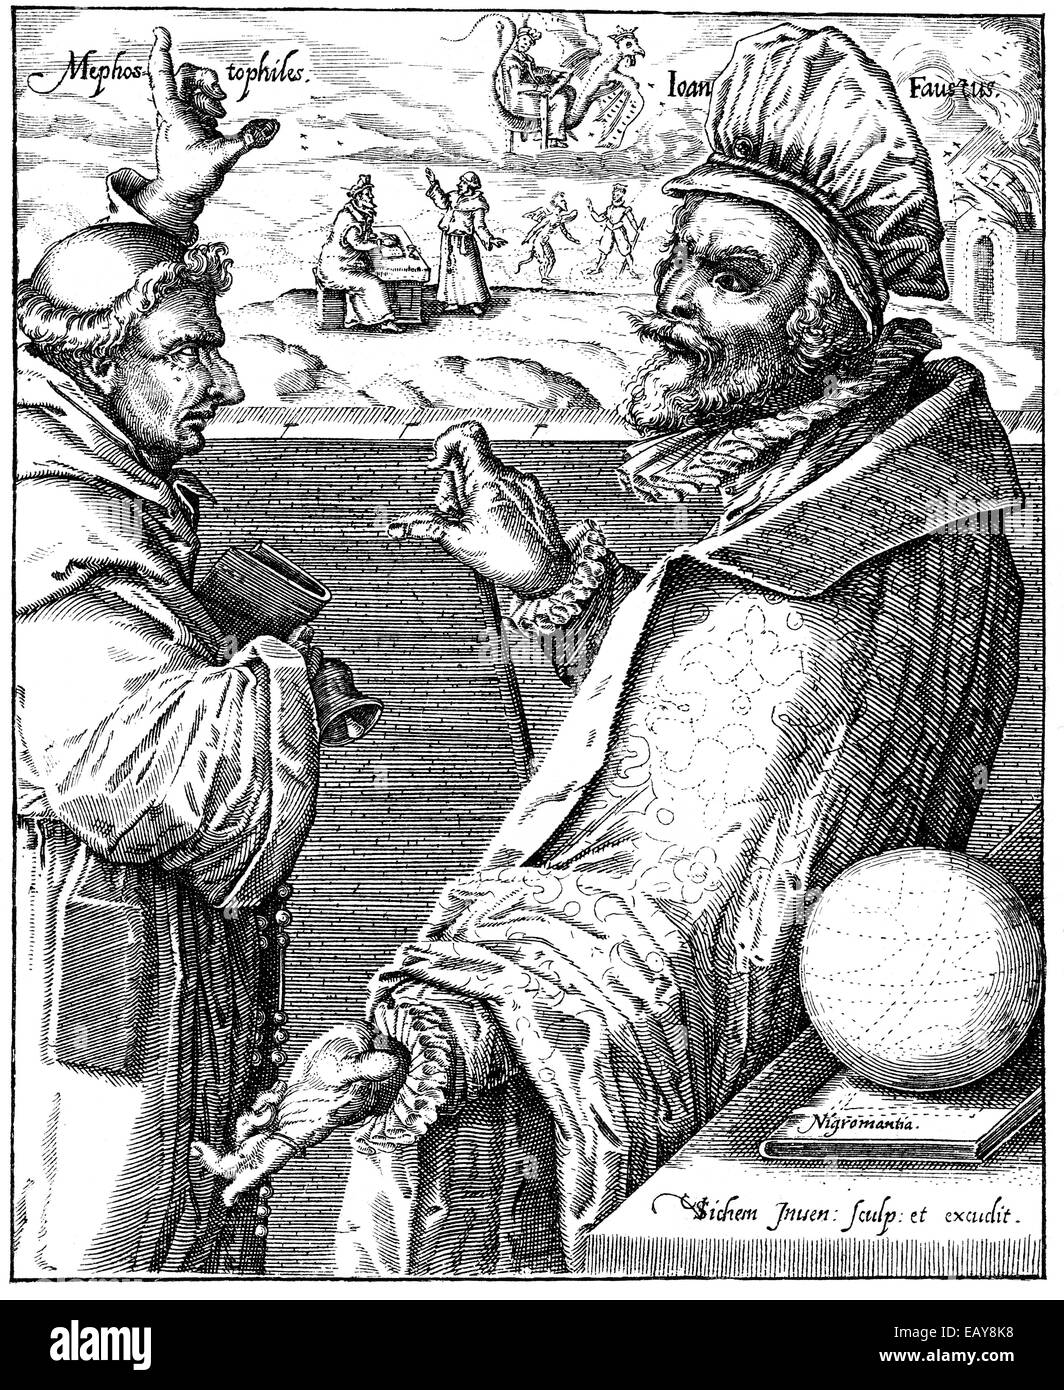 the Faustian pact between Mephistopheles or Mephisto and Heinrich Faust, 16th century, der Teufelspakt zwischen Stock Photo